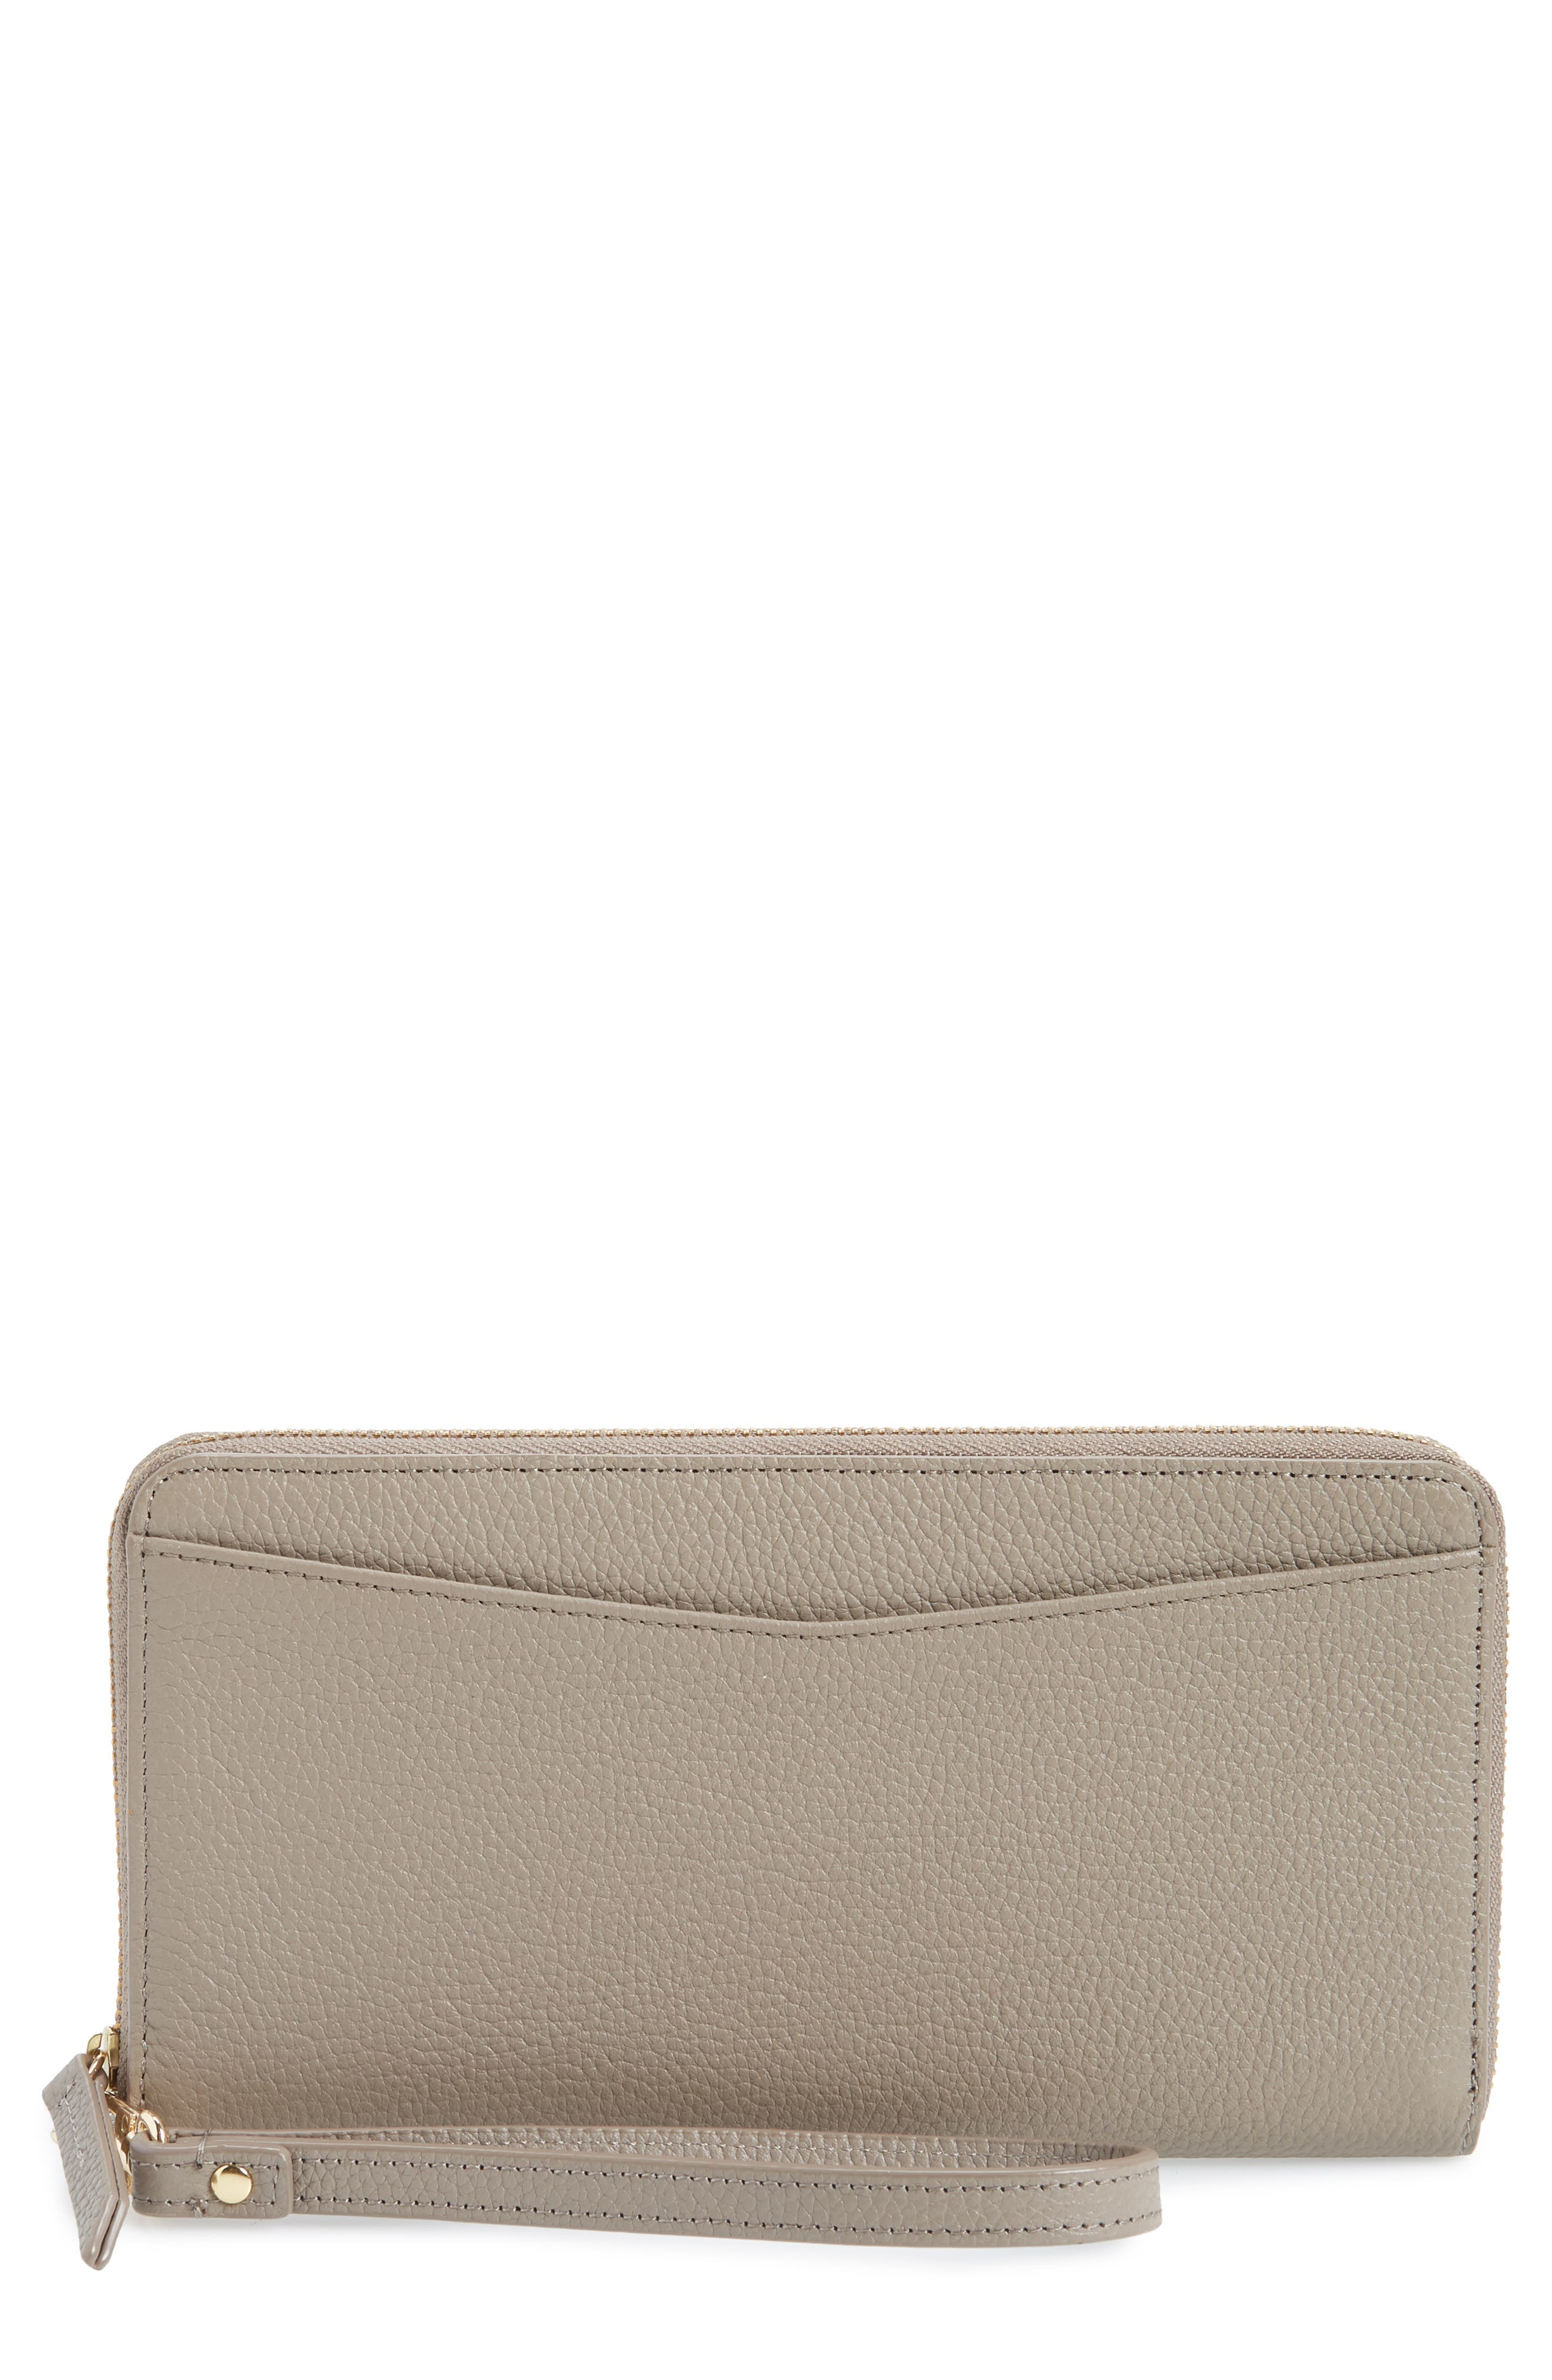 NORDSTROM Zip Around Leather Continental Wallet, Main, color, GREY TAUPE